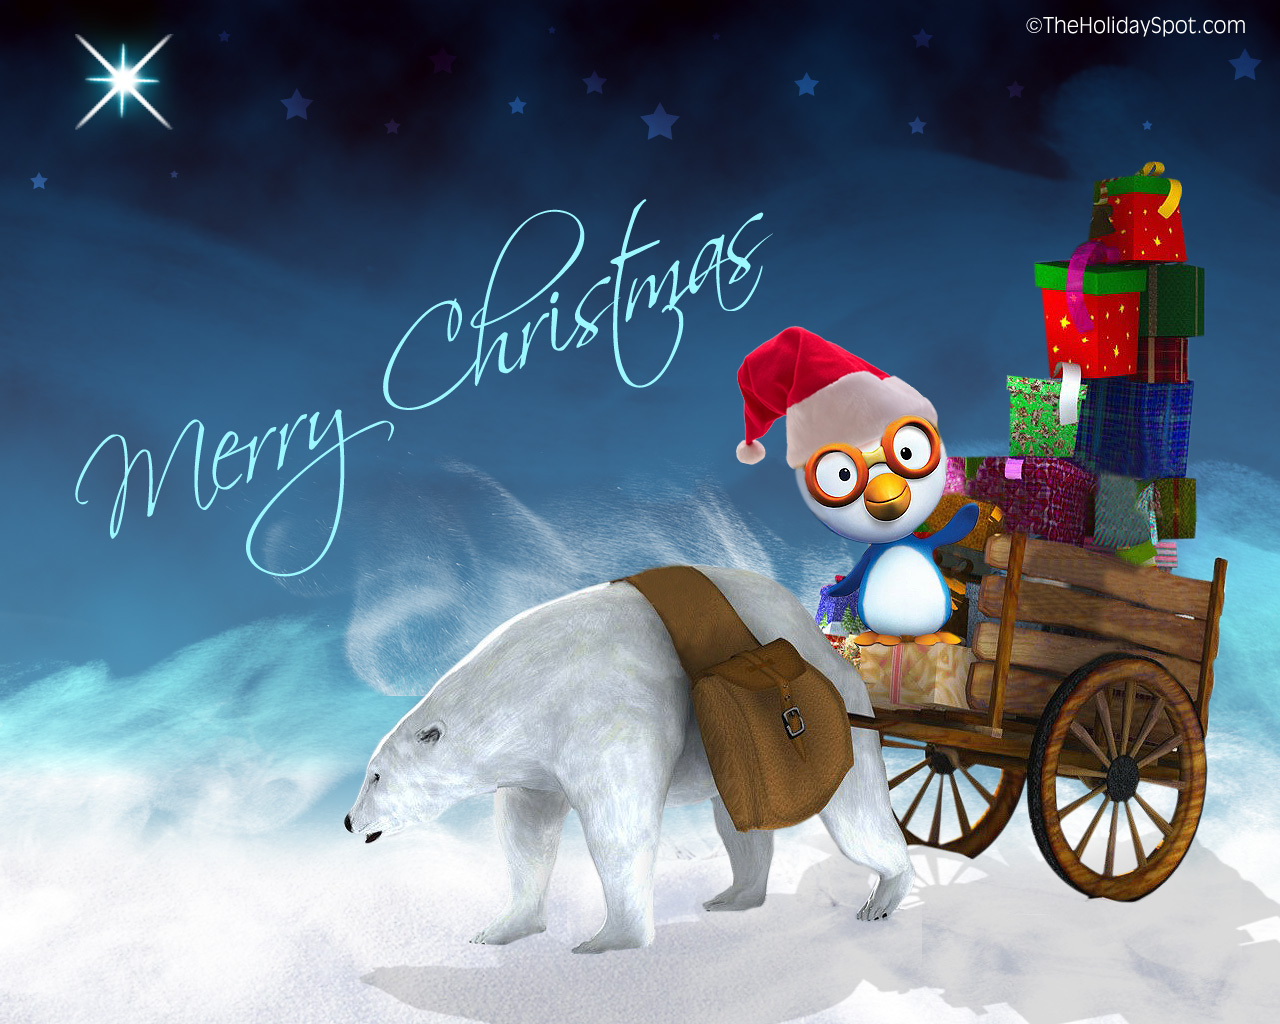 1280x1024 Christmas Wallpapers   1280x1024 Merry Christmas wallpaper 1280x1024